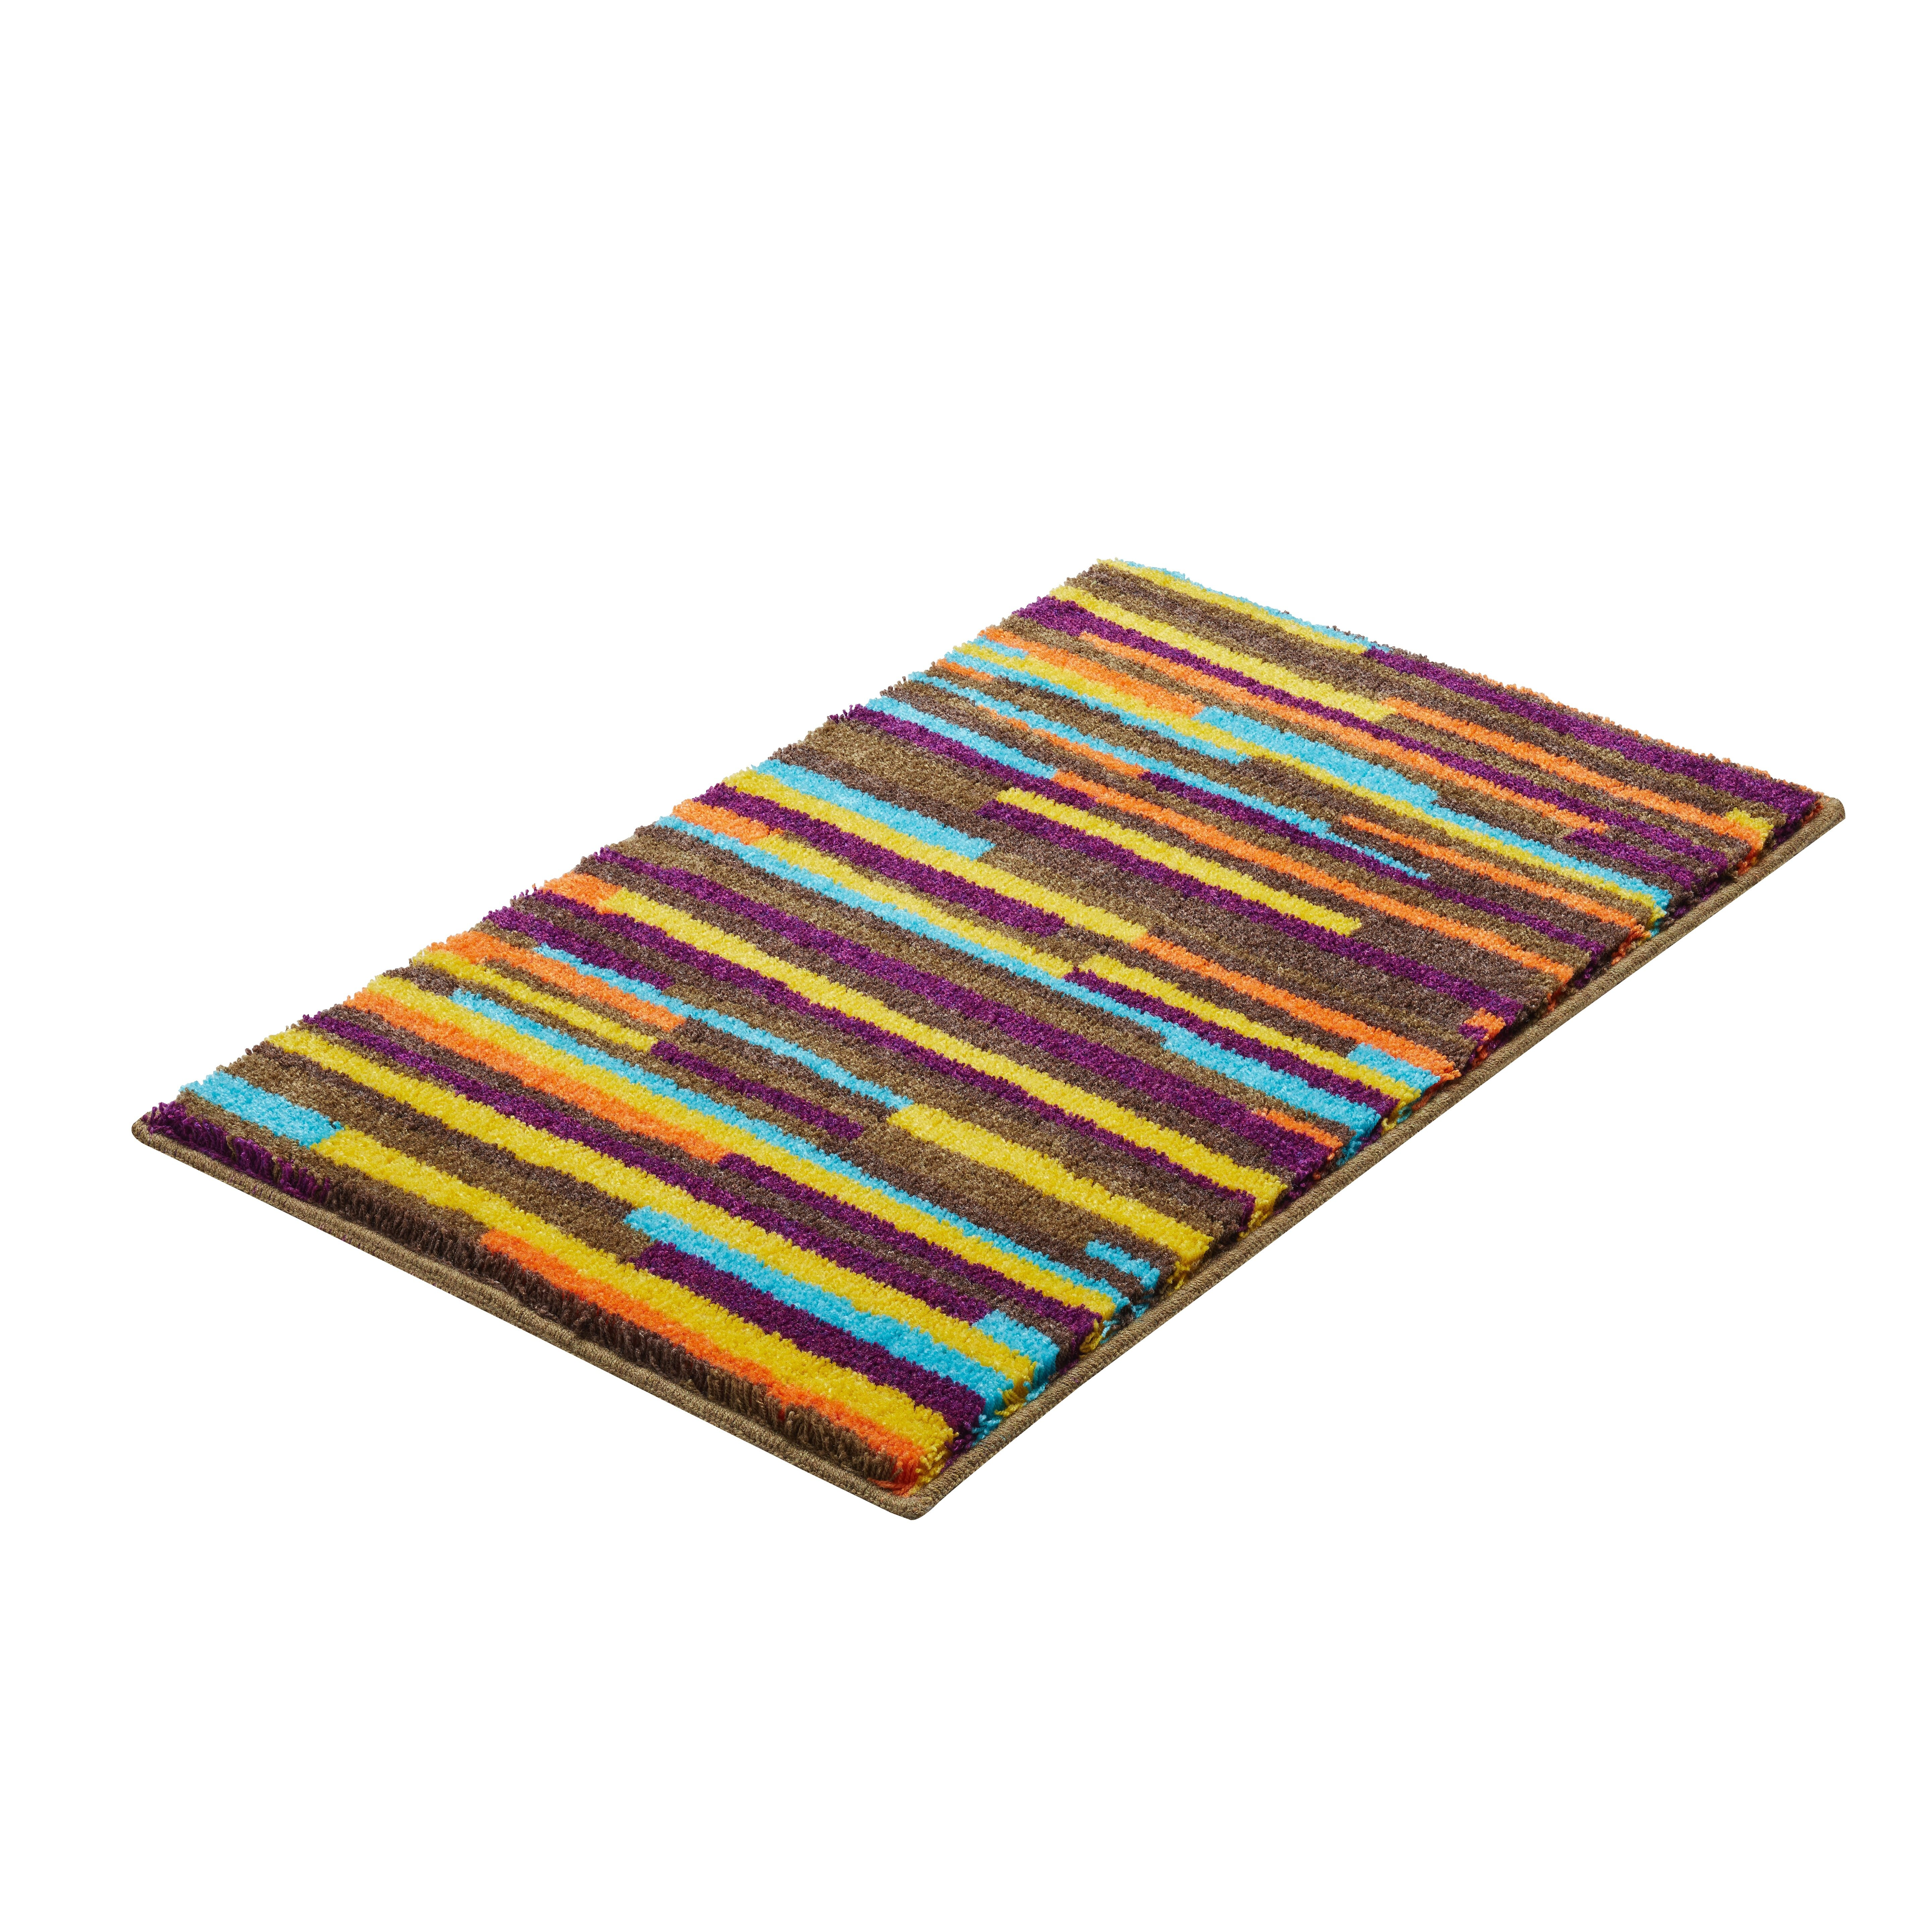 Designer bathroom rugs and mats the best inspiration for interiors design and furniture - Designer bathroom rugs and mats ...